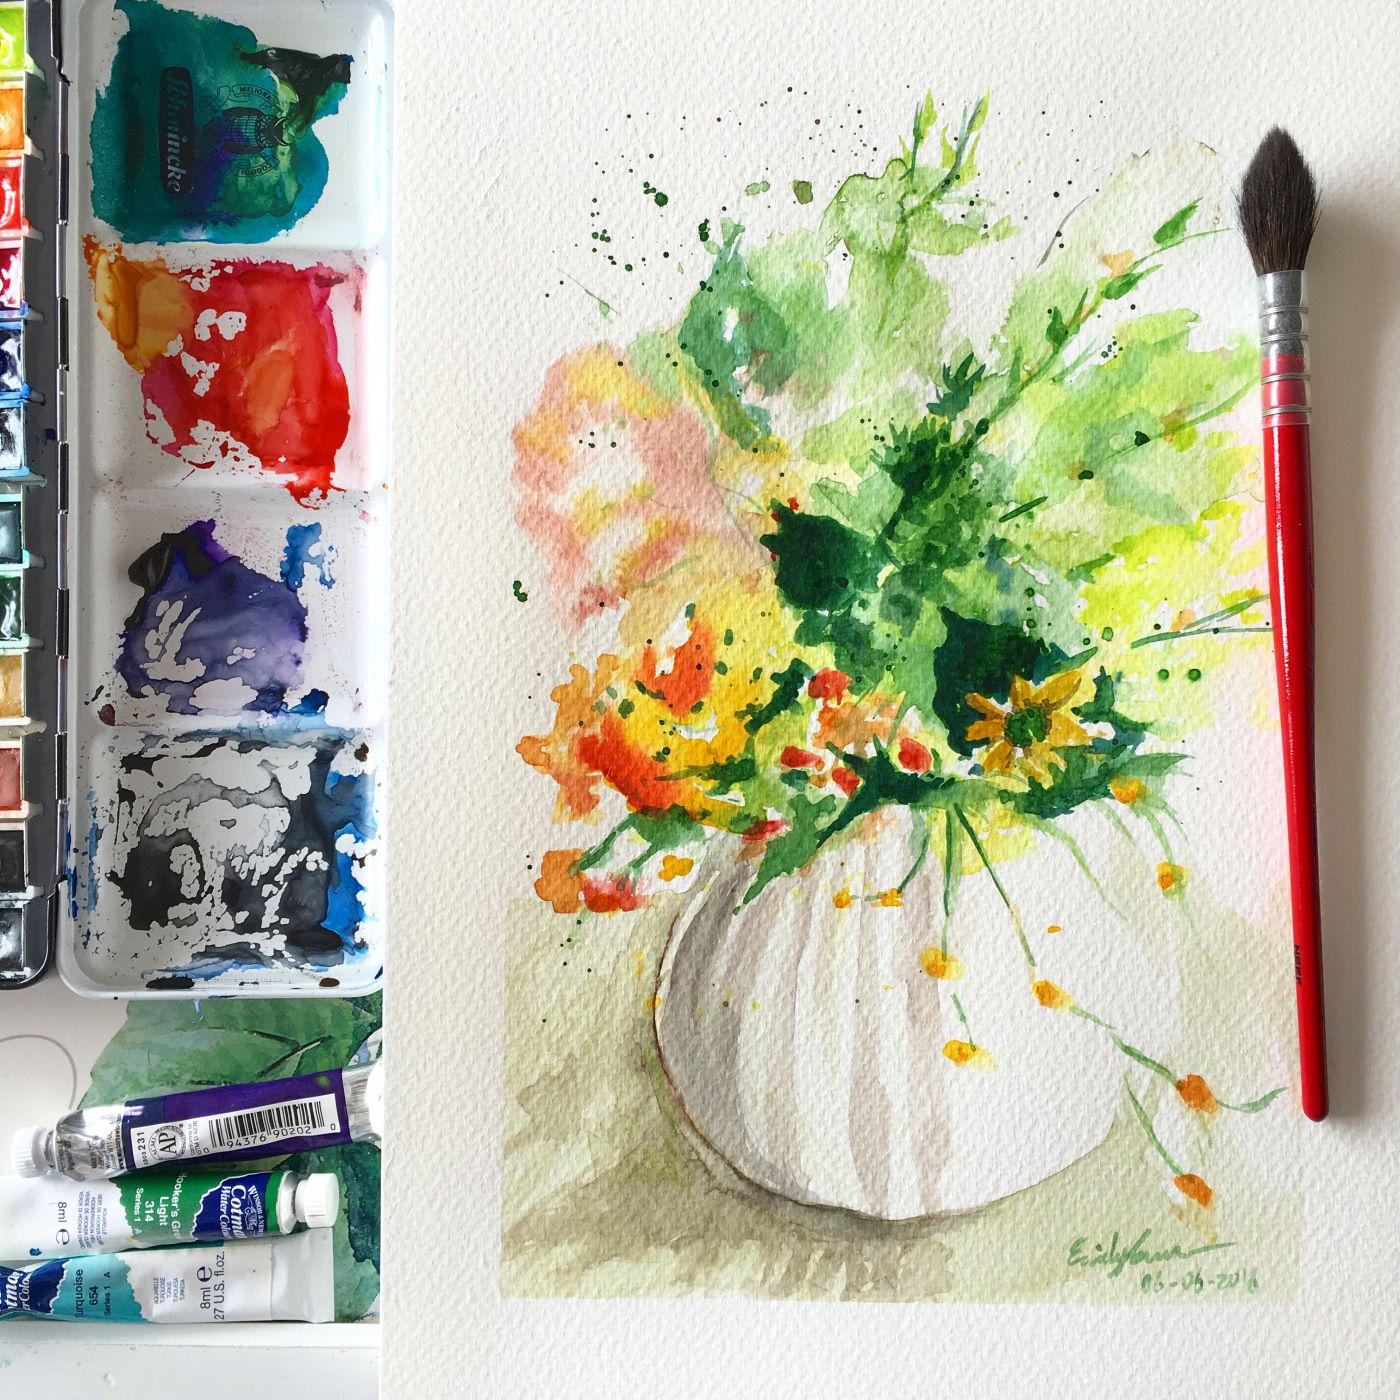 Watercolour Tutorial – Flowers in White Vase | Watercolor ... on flower butterfly painting, flower wreath painting, flower window painting, bottle flower painting, flower bed painting, flower still life oil paintings, flower table painting, frame painting, flower mirror painting, flower box painting, flower vases with flowers, flower light painting, flower oil paintings christmas, candle painting, bird-and-flower painting, flower white painting, flower bowl painting, modern palette knife painting, flower stand painting, flower girl painting,